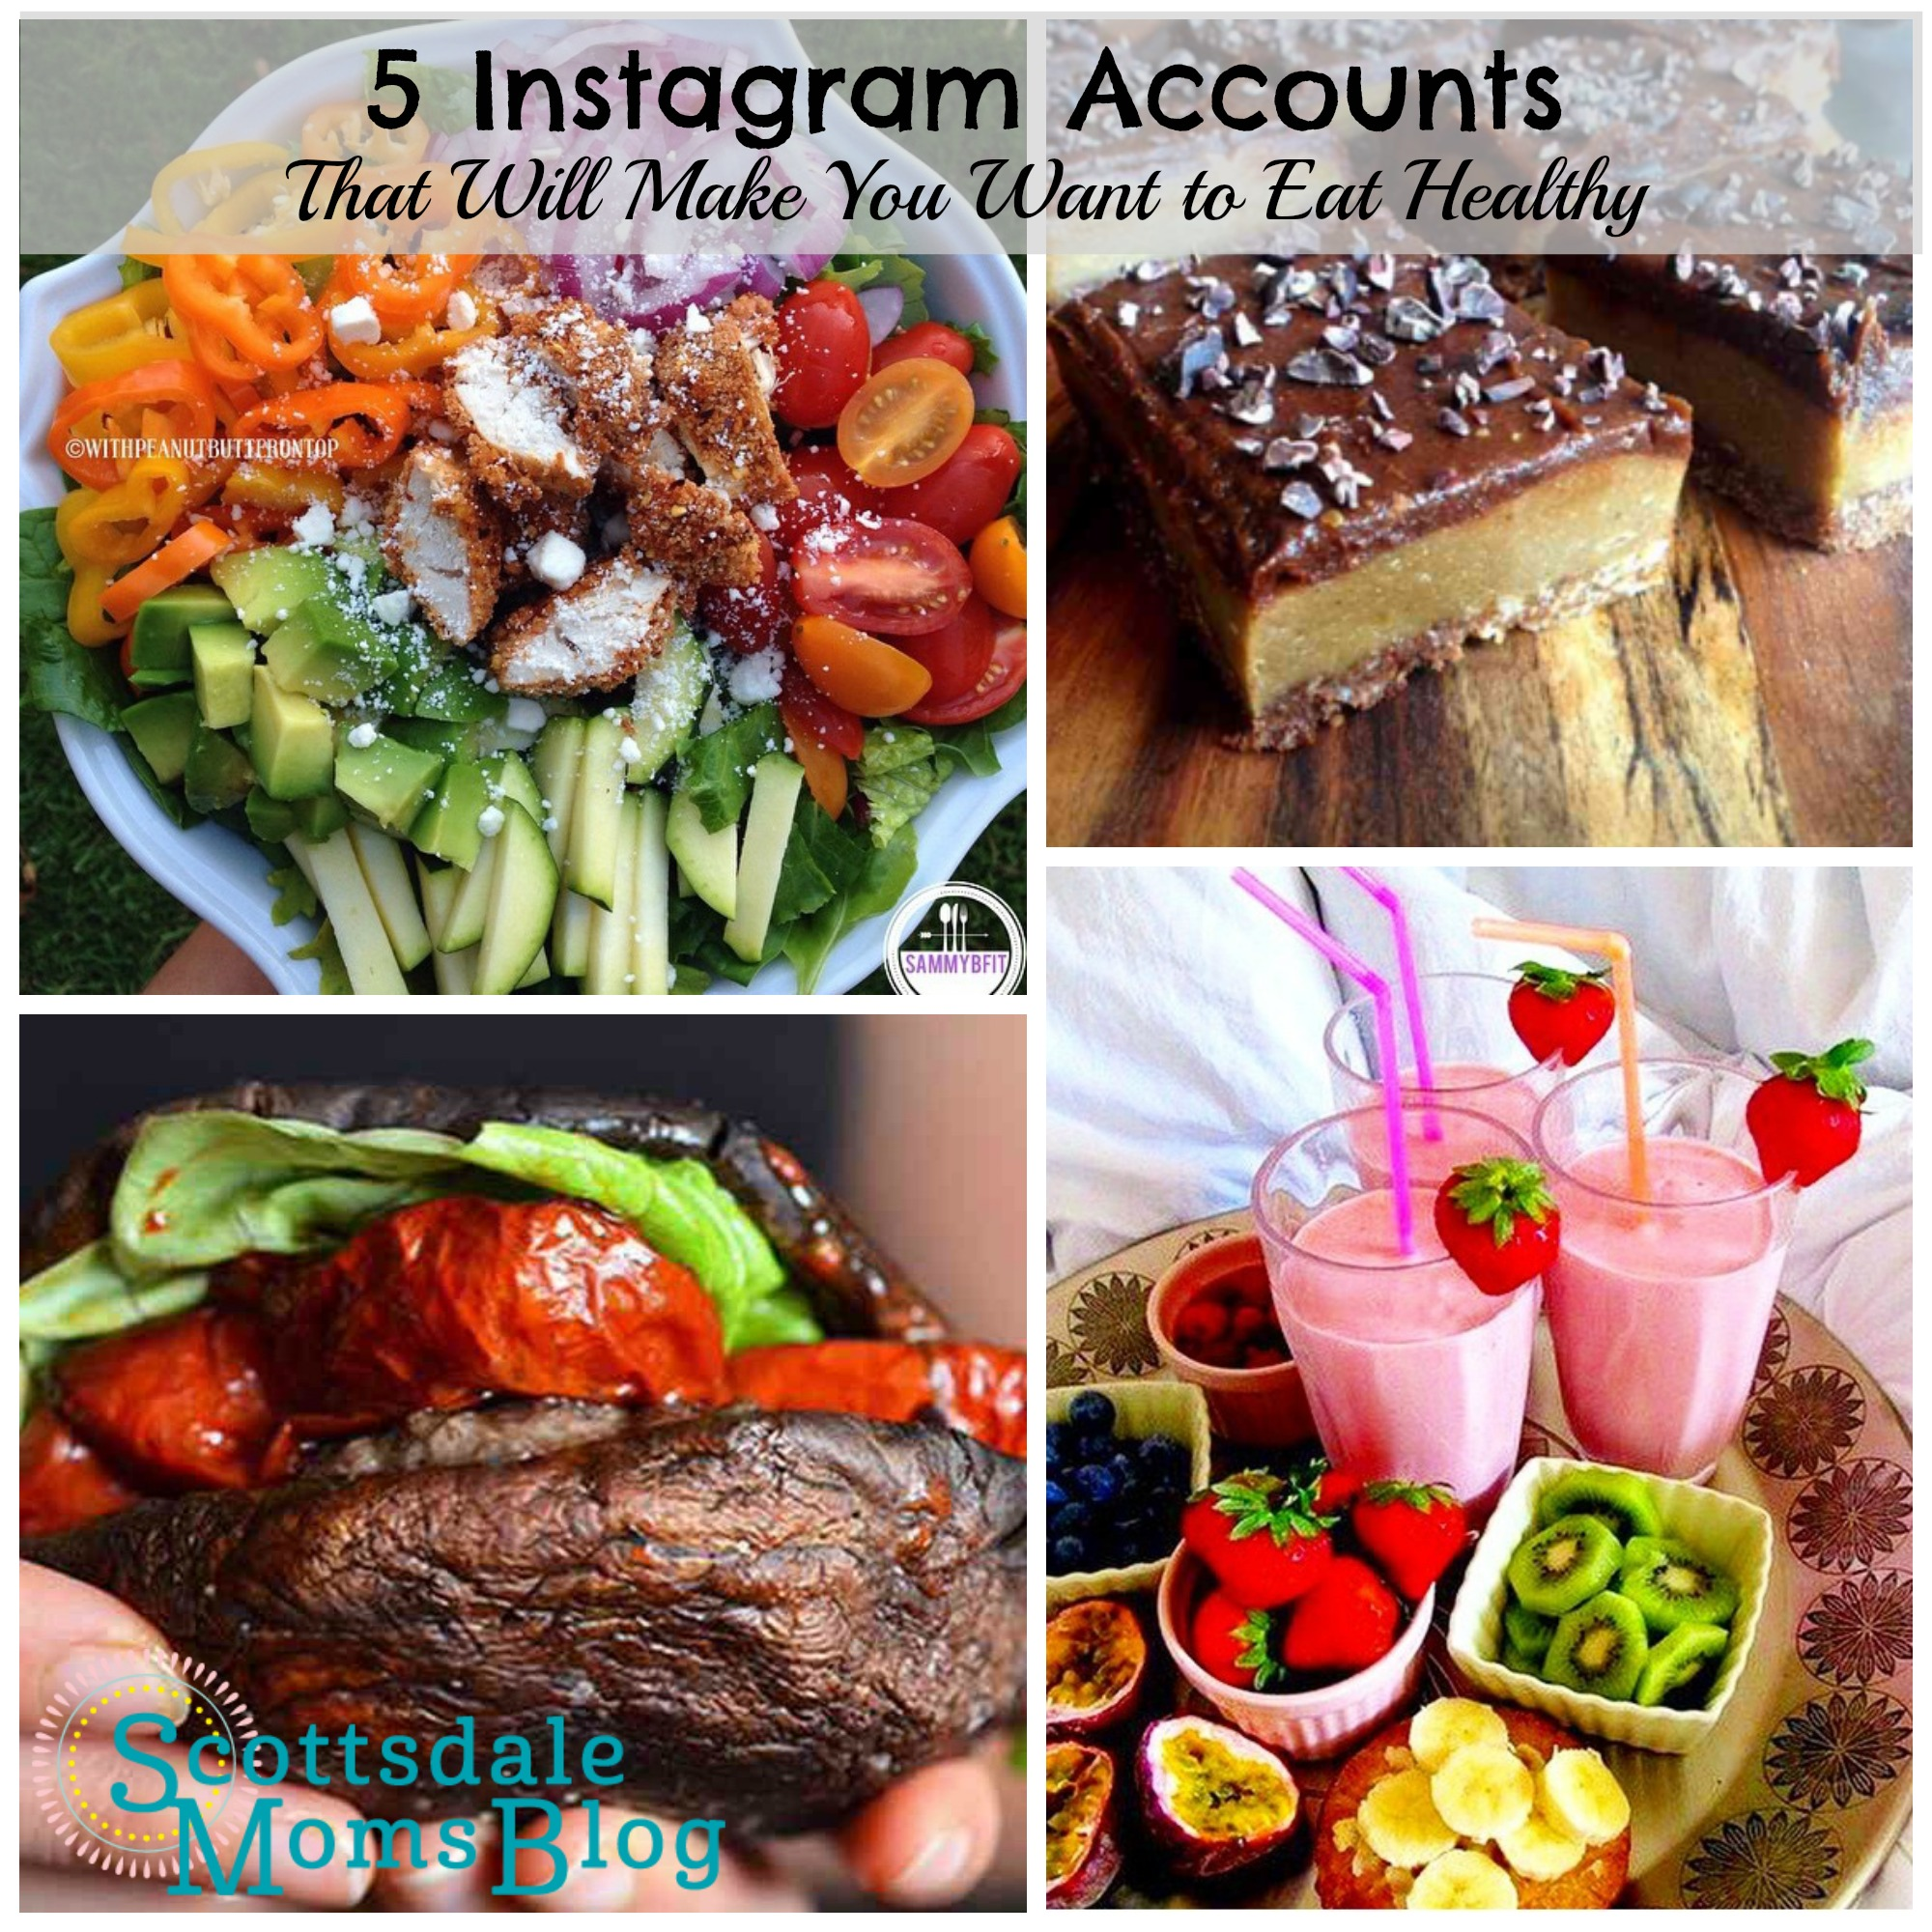 Food photos make you drool 5 instagram accounts to inspire food photos make you drool 5 instagram accounts to inspire healthy eating forumfinder Choice Image